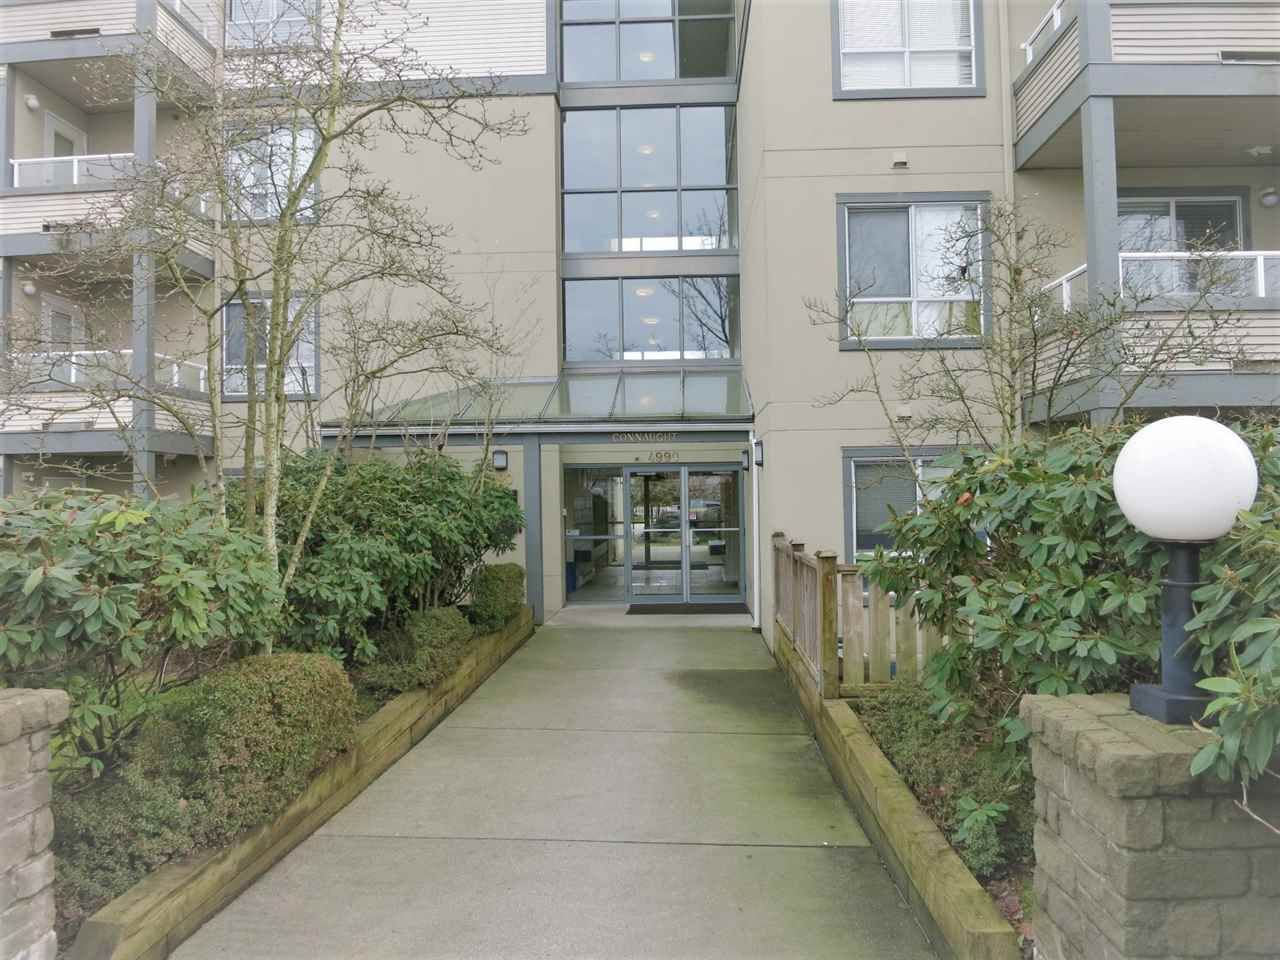 """Main Photo: 316 4990 MCGEER Street in Vancouver: Collingwood VE Condo for sale in """"CONNAUGHT"""" (Vancouver East)  : MLS®# R2141317"""